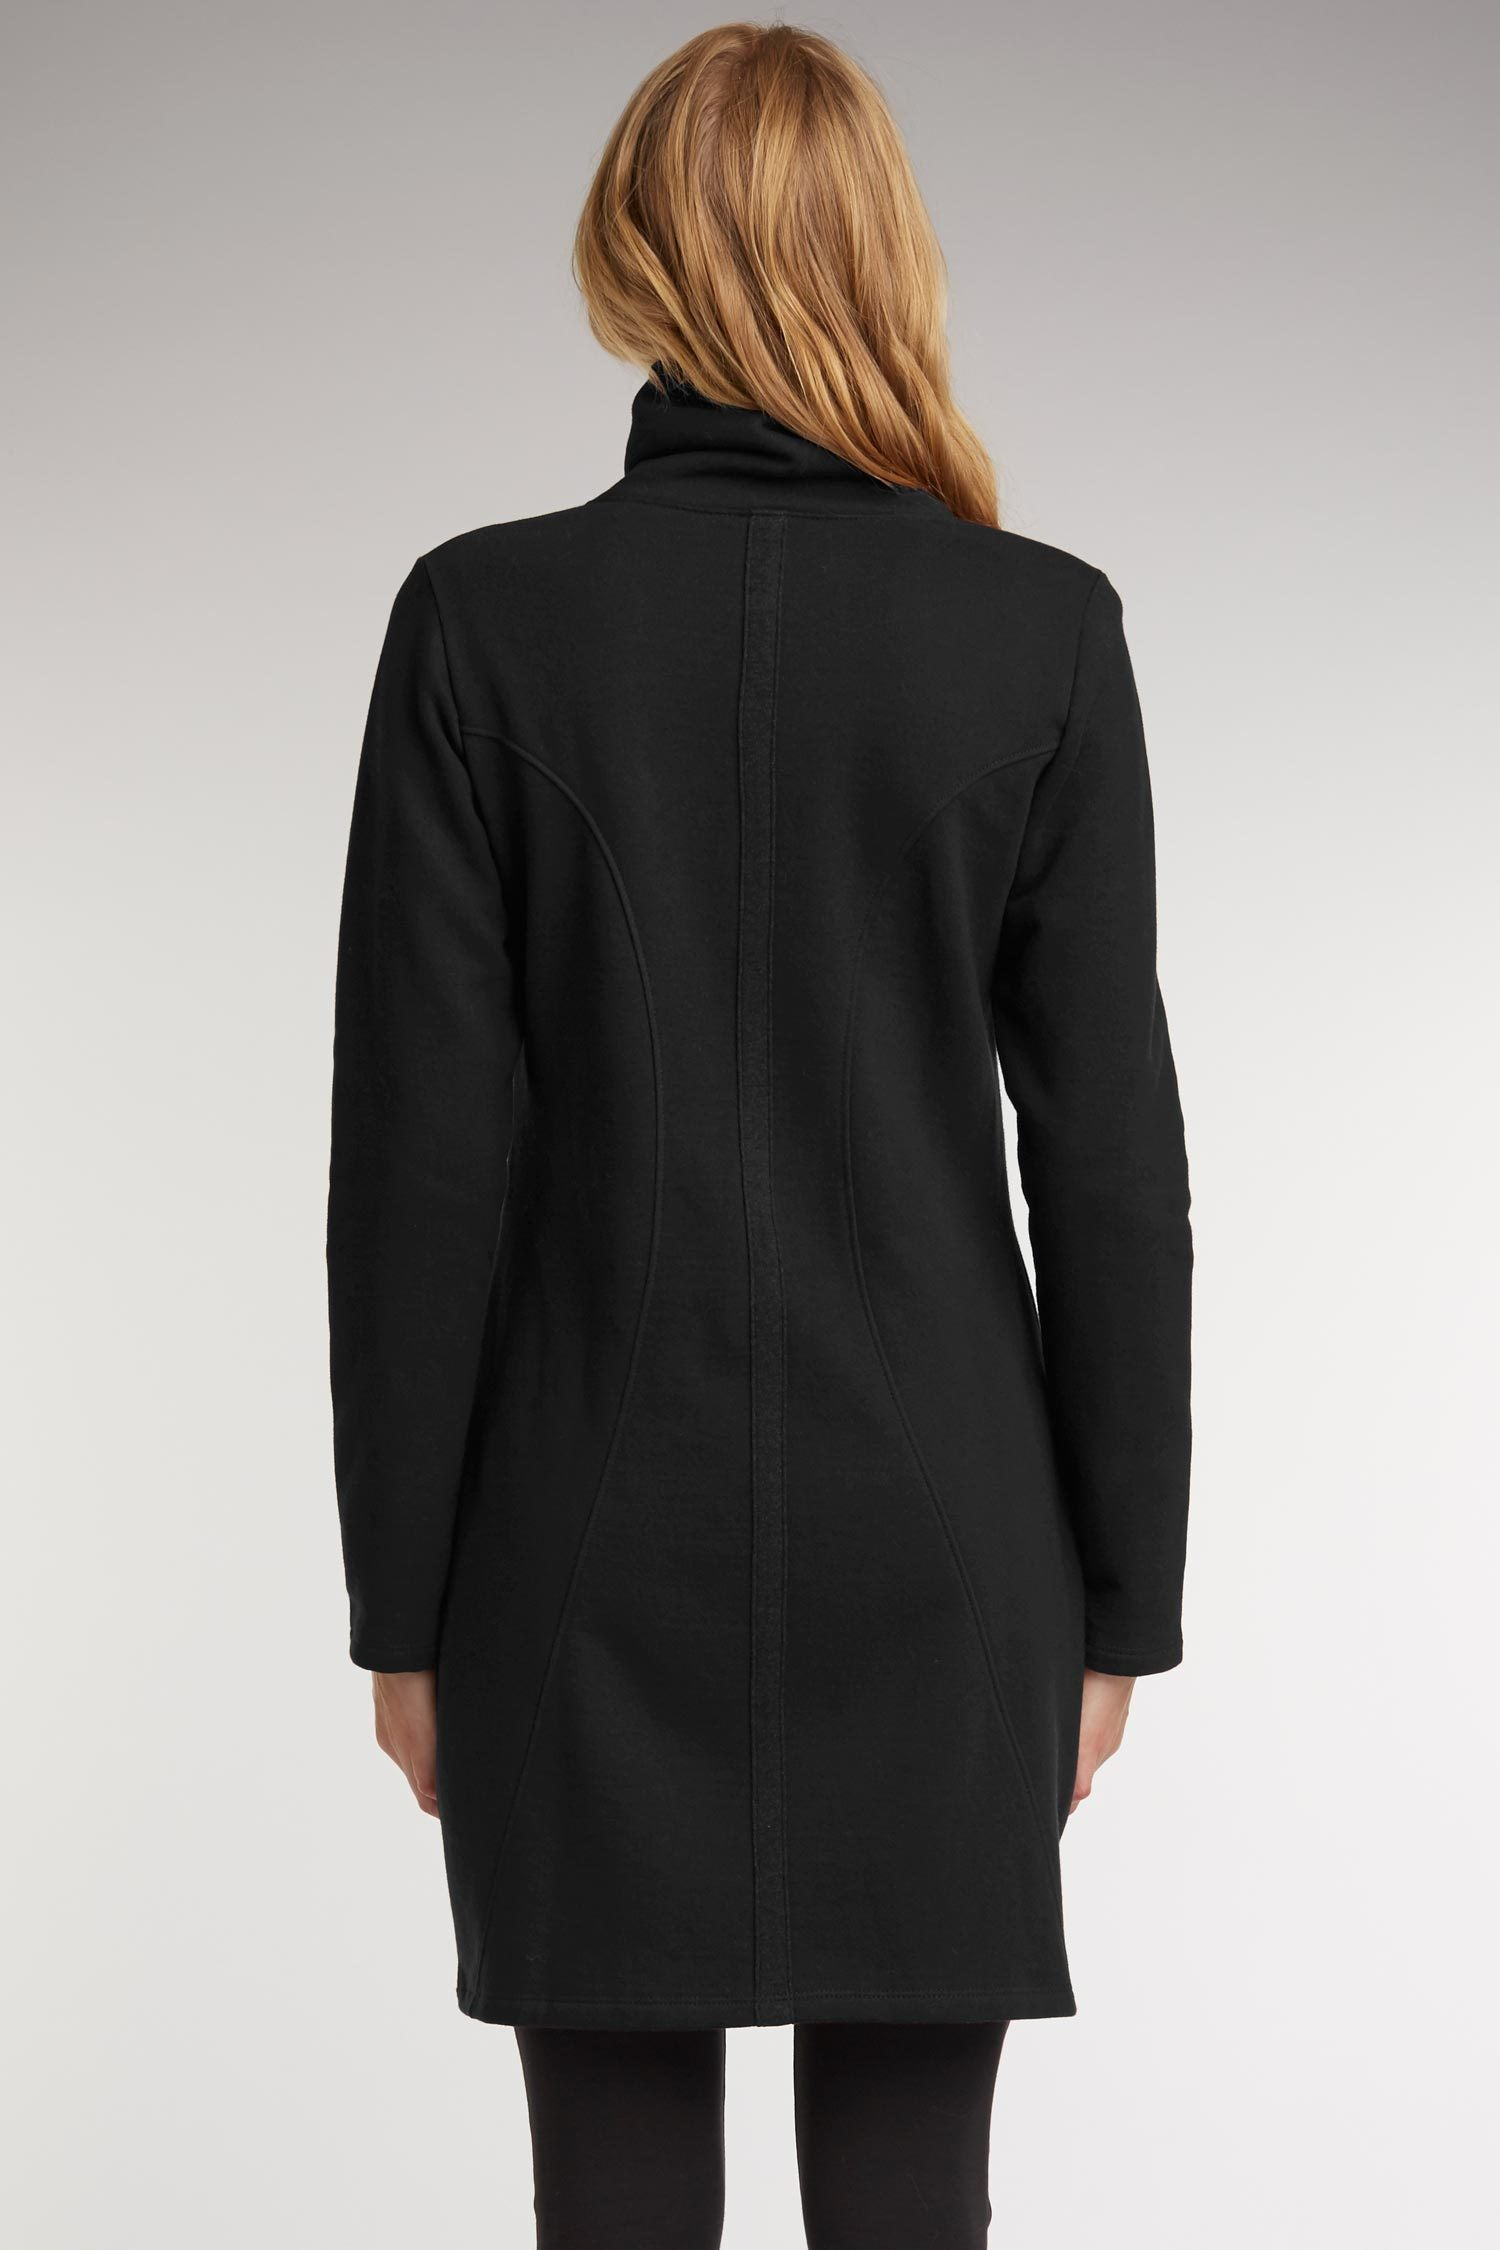 a12ad91b Women's Urban Zip Coat | Organic Cotton Jacket | Black Green ...